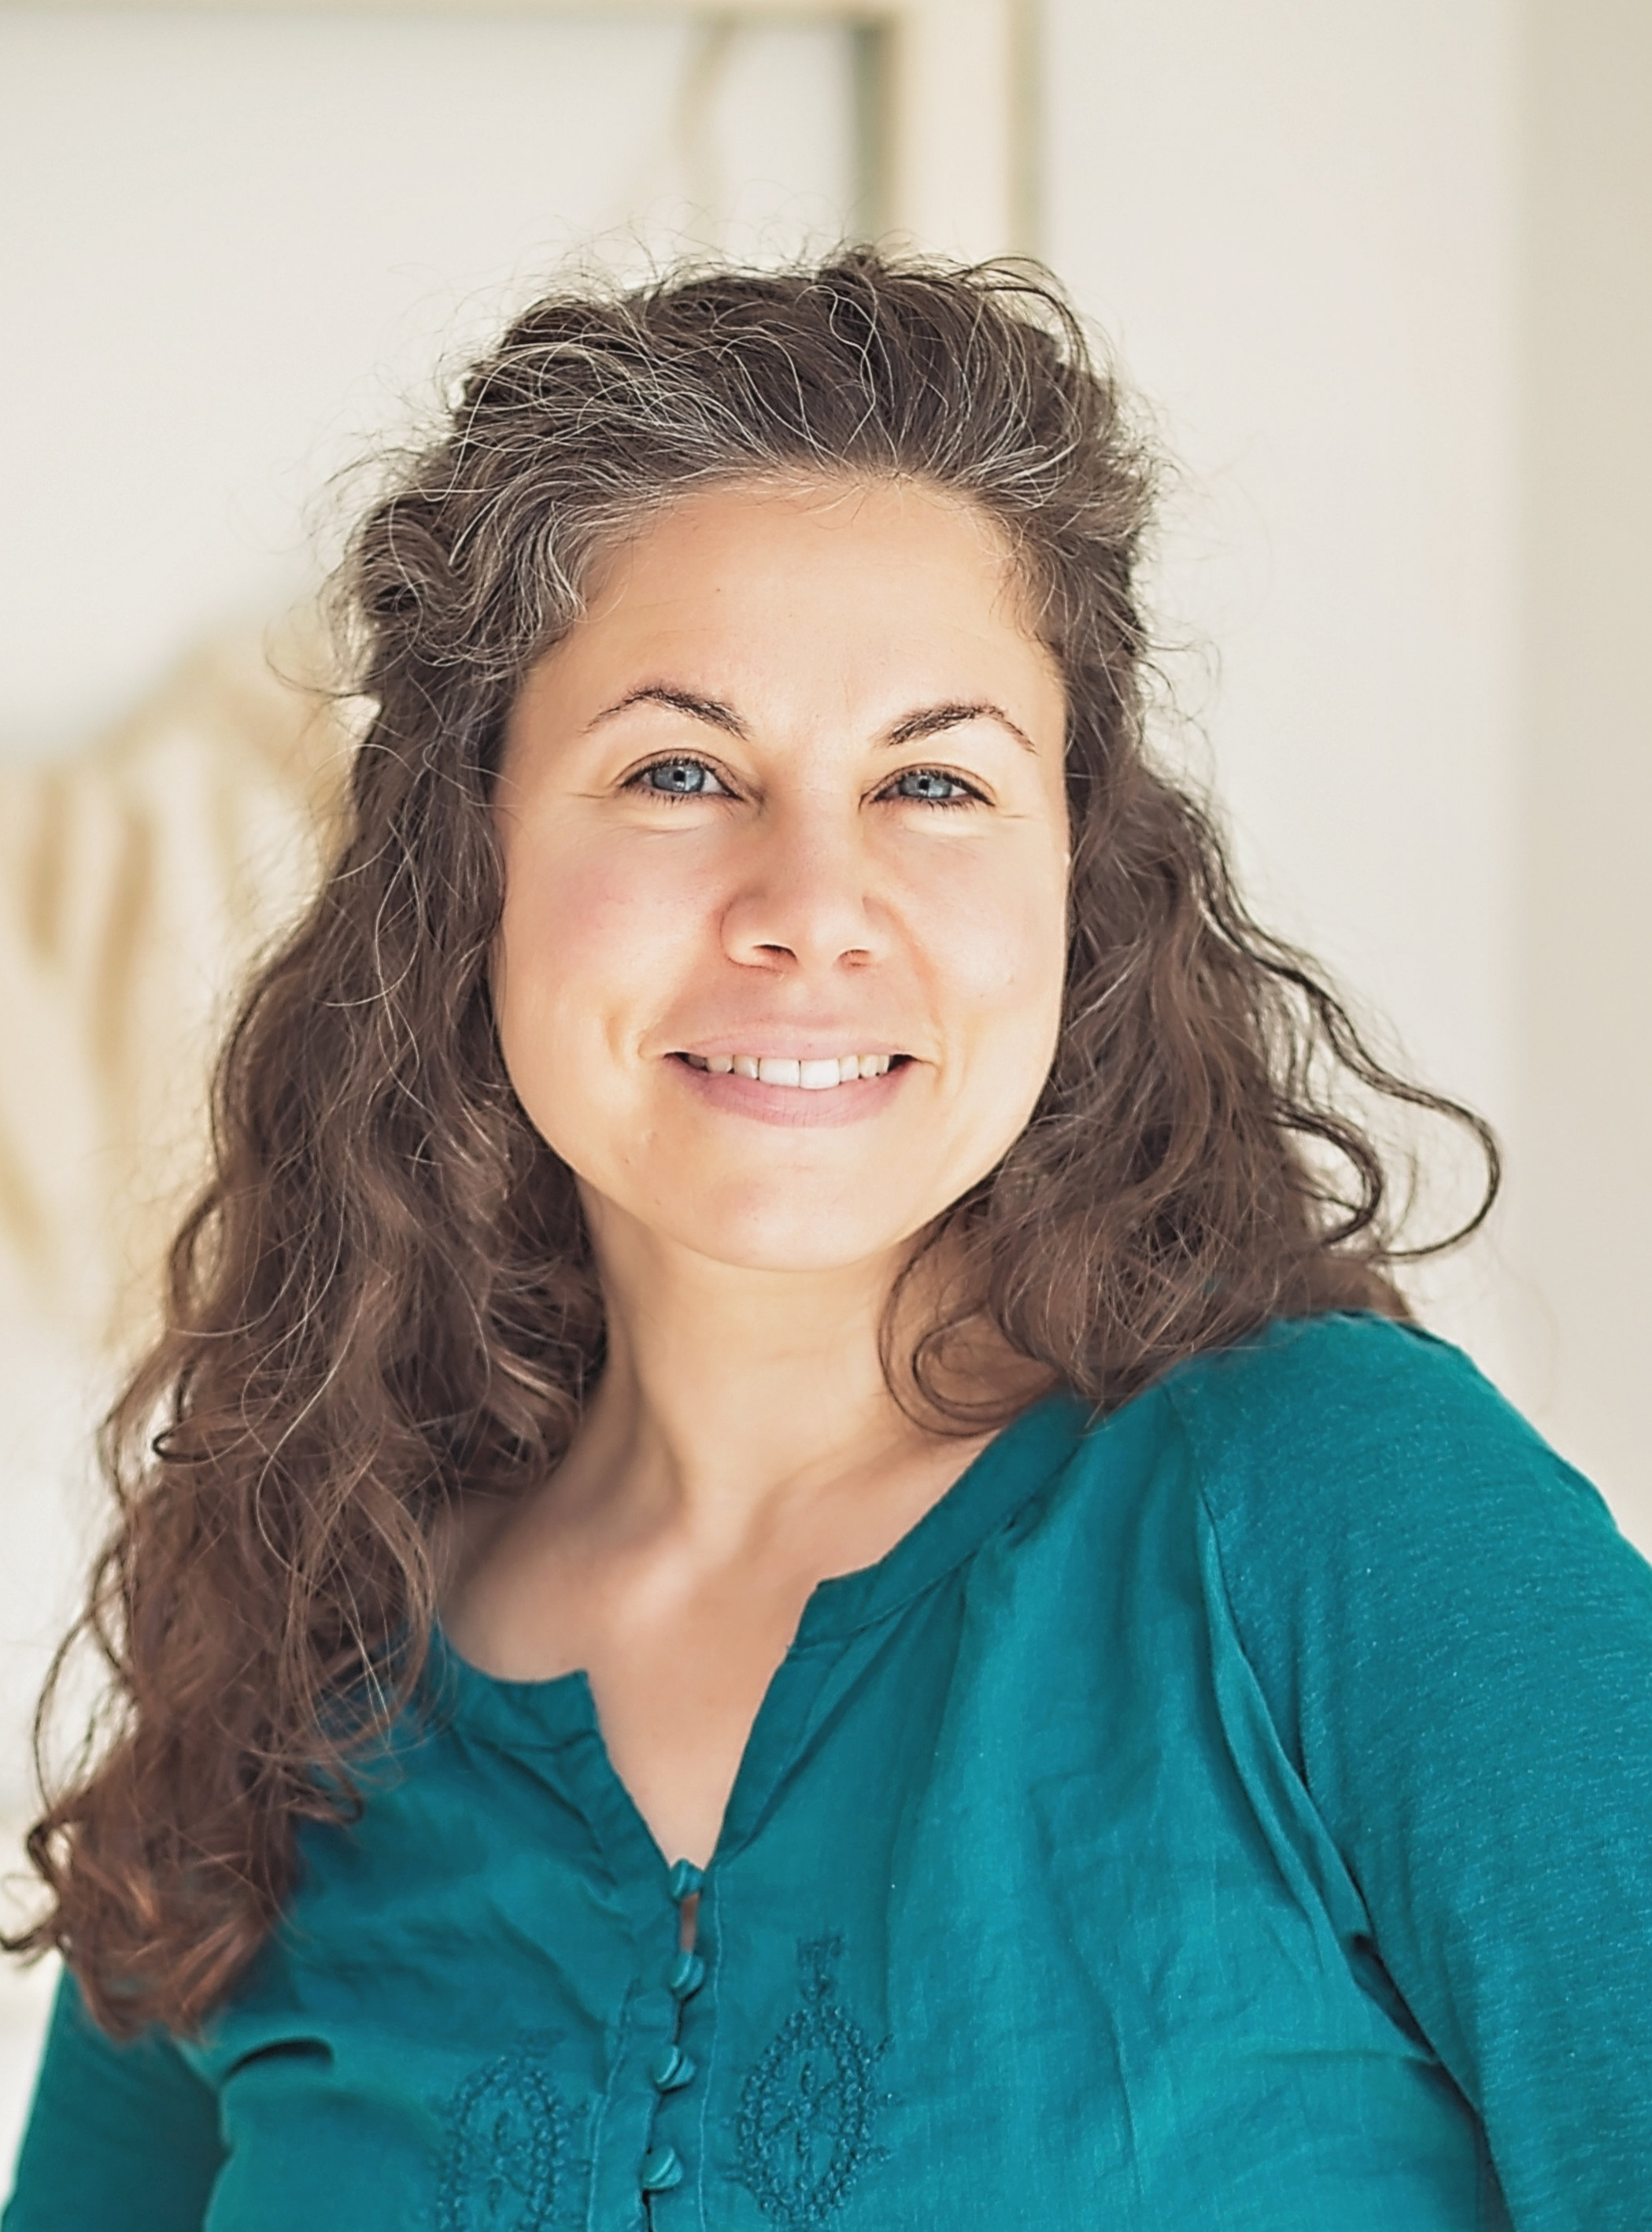 Jenna Aquilina M.Ac.OM, Dipl.Ac., L.Ac. is an ilumina practitioner who has been practicing TCM and Acupuncture for over 15 years.